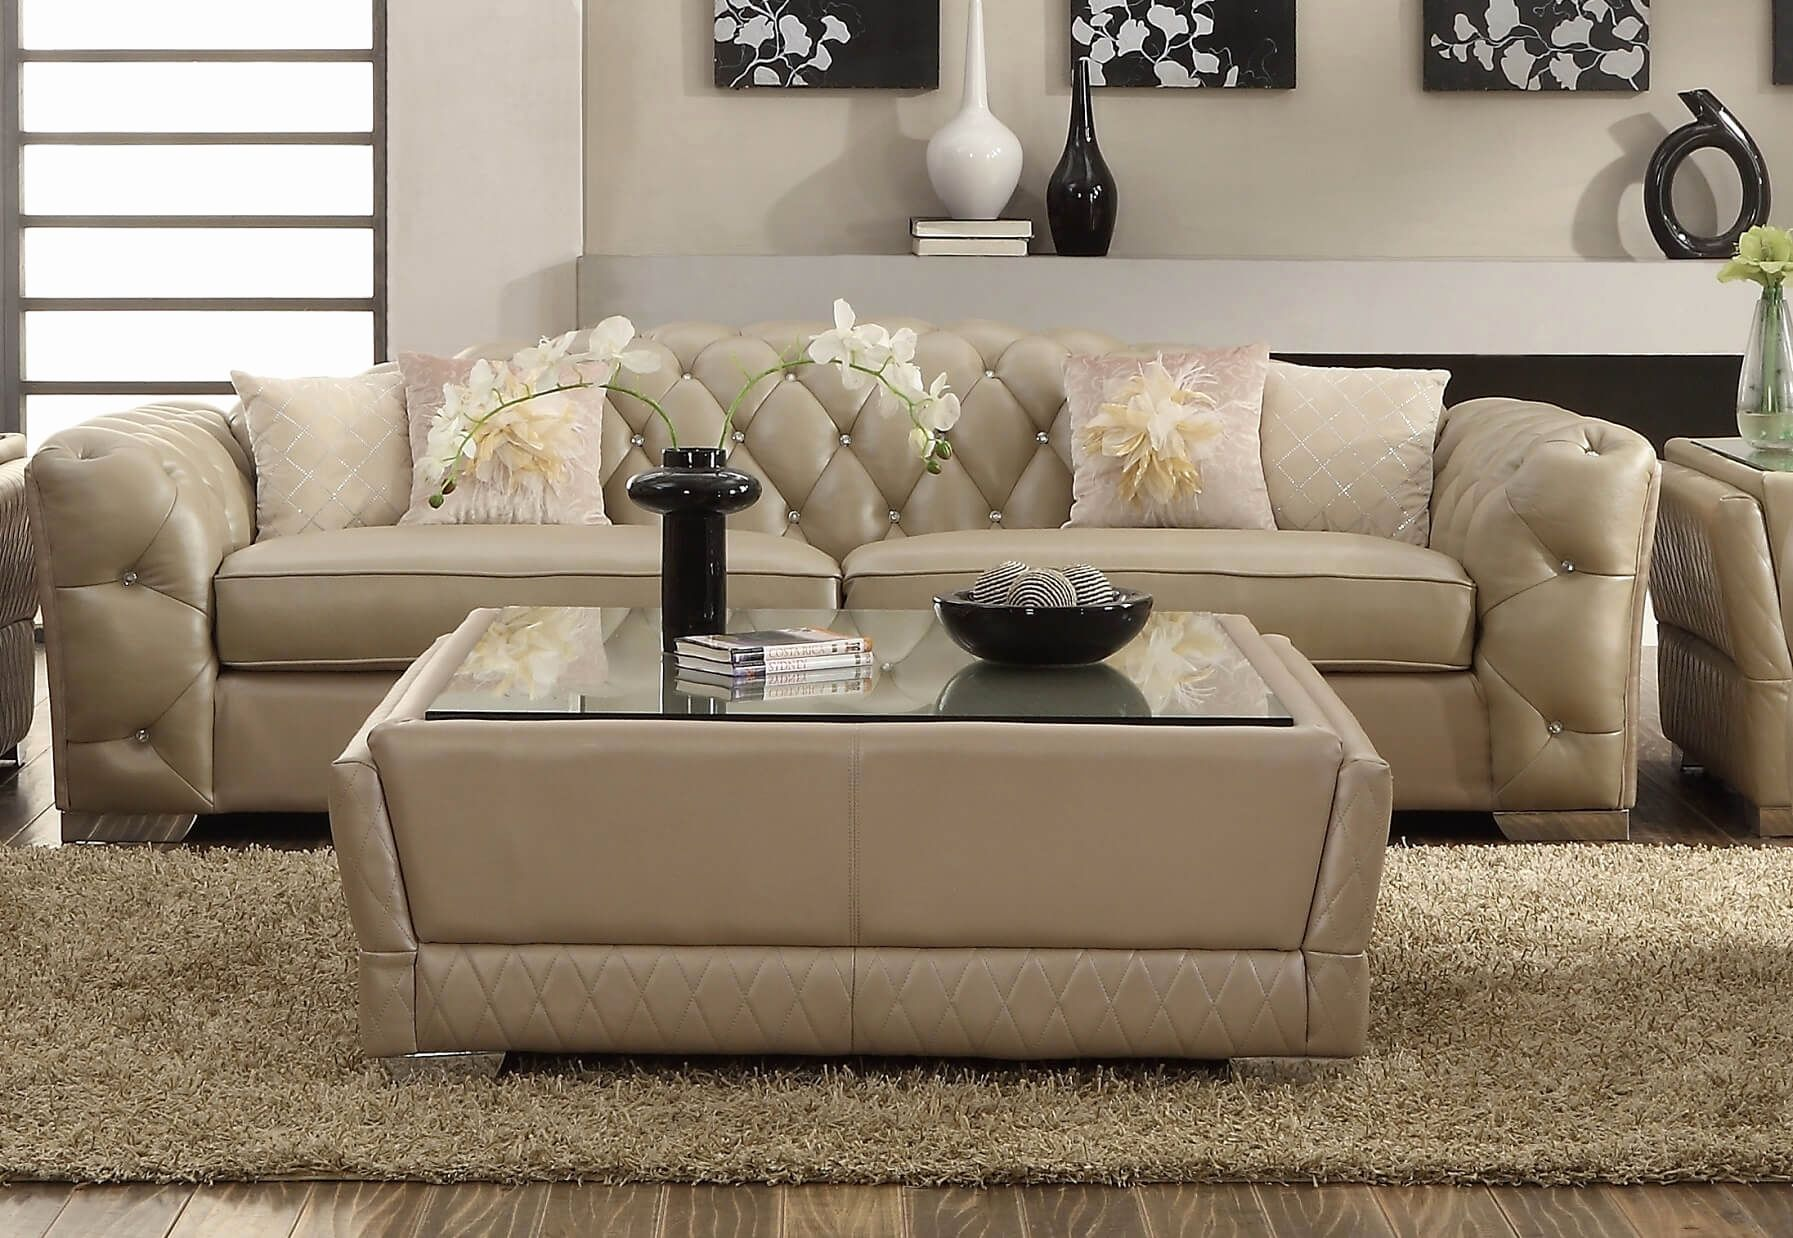 Cream Leather Sofa Photograpy